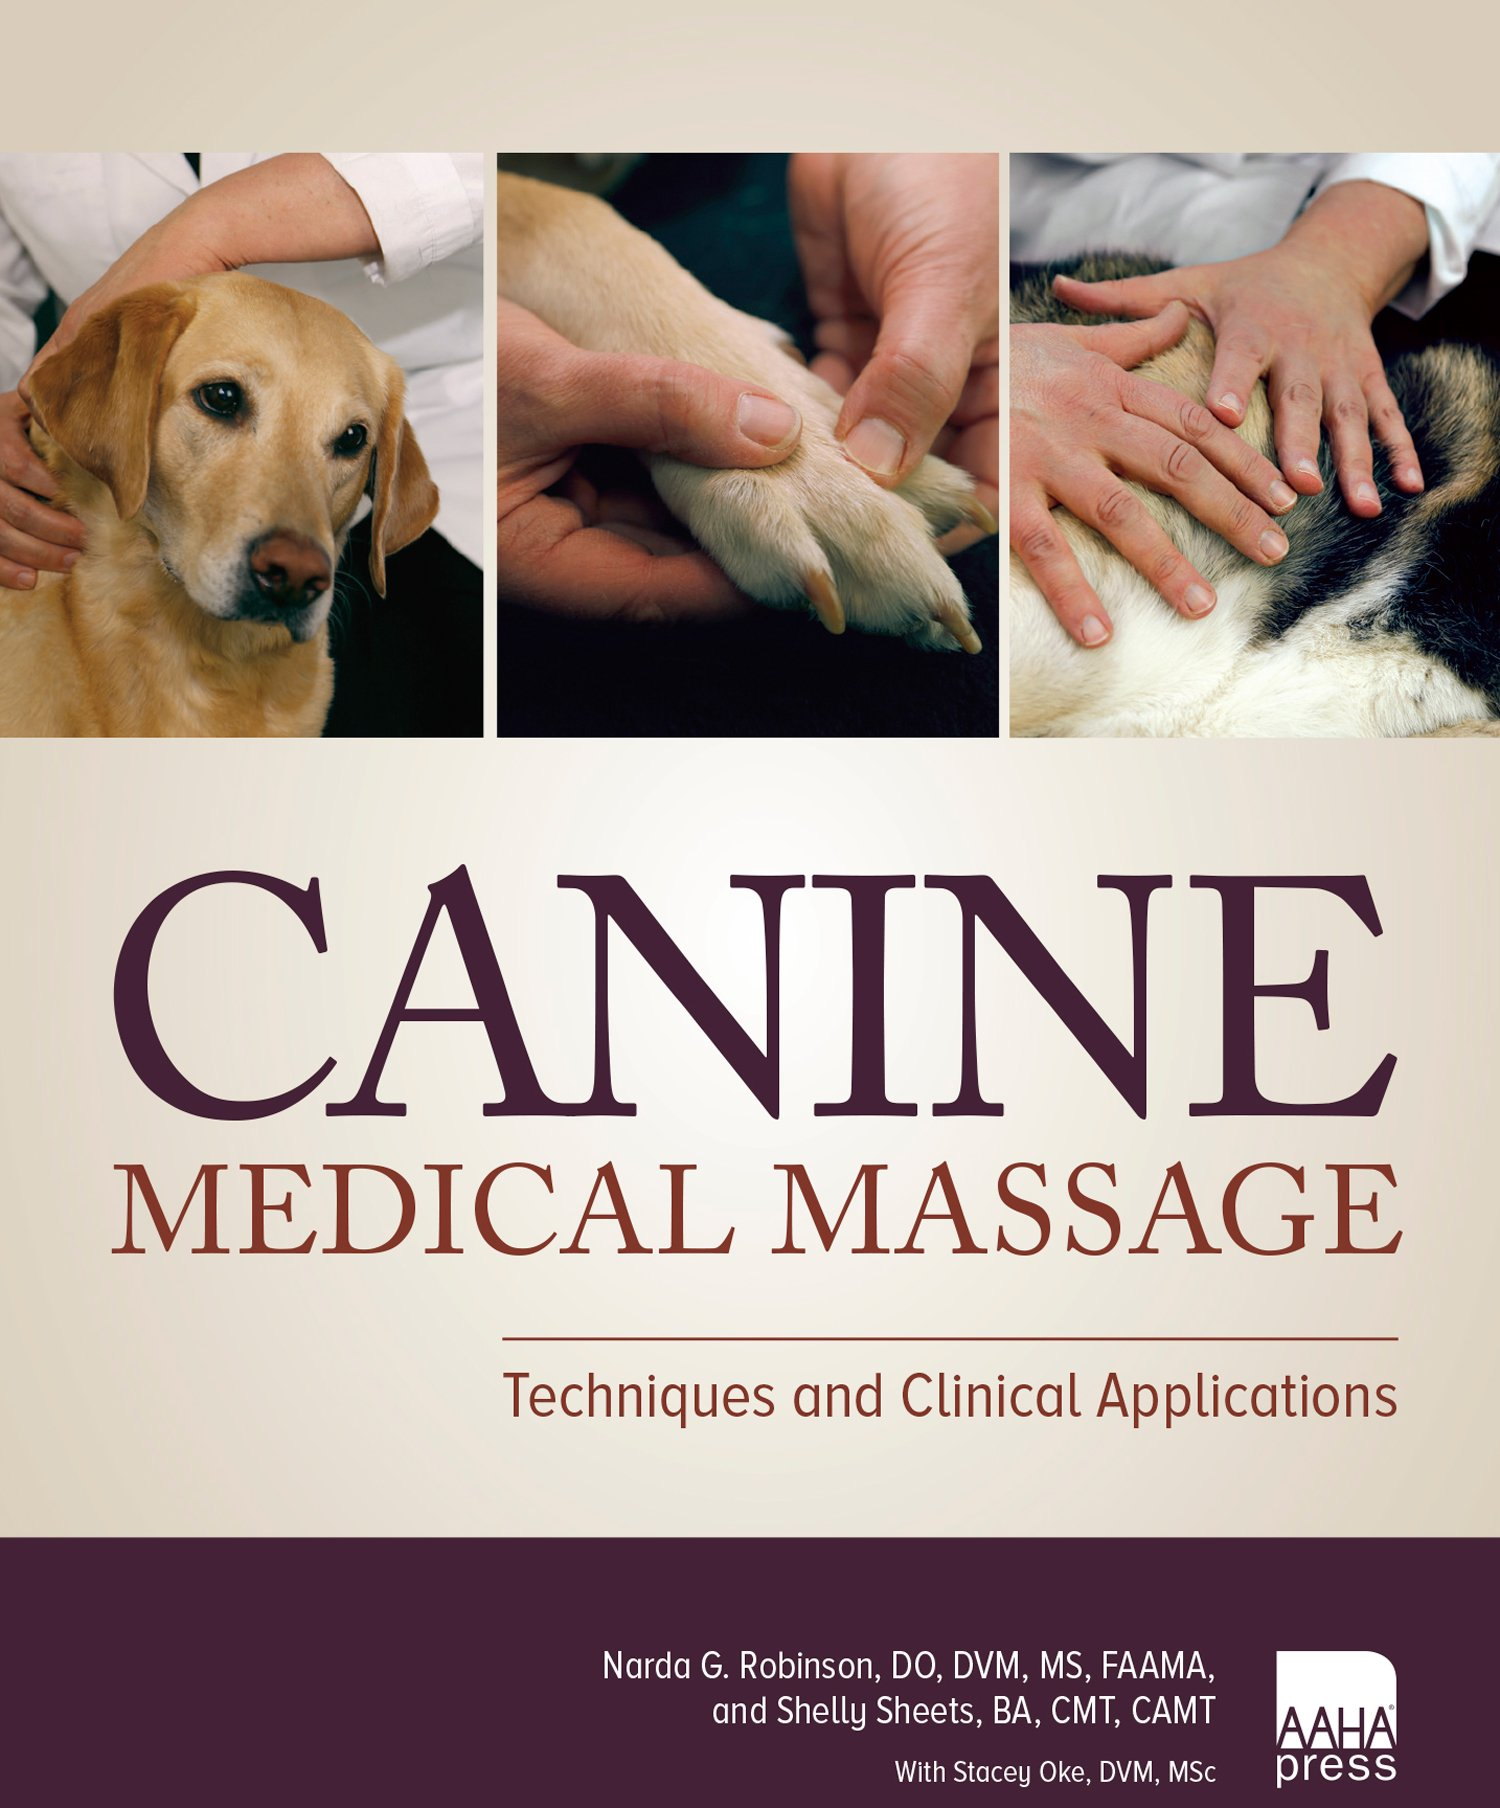 Canine Medical Massage: Techniques and Clinical Applications